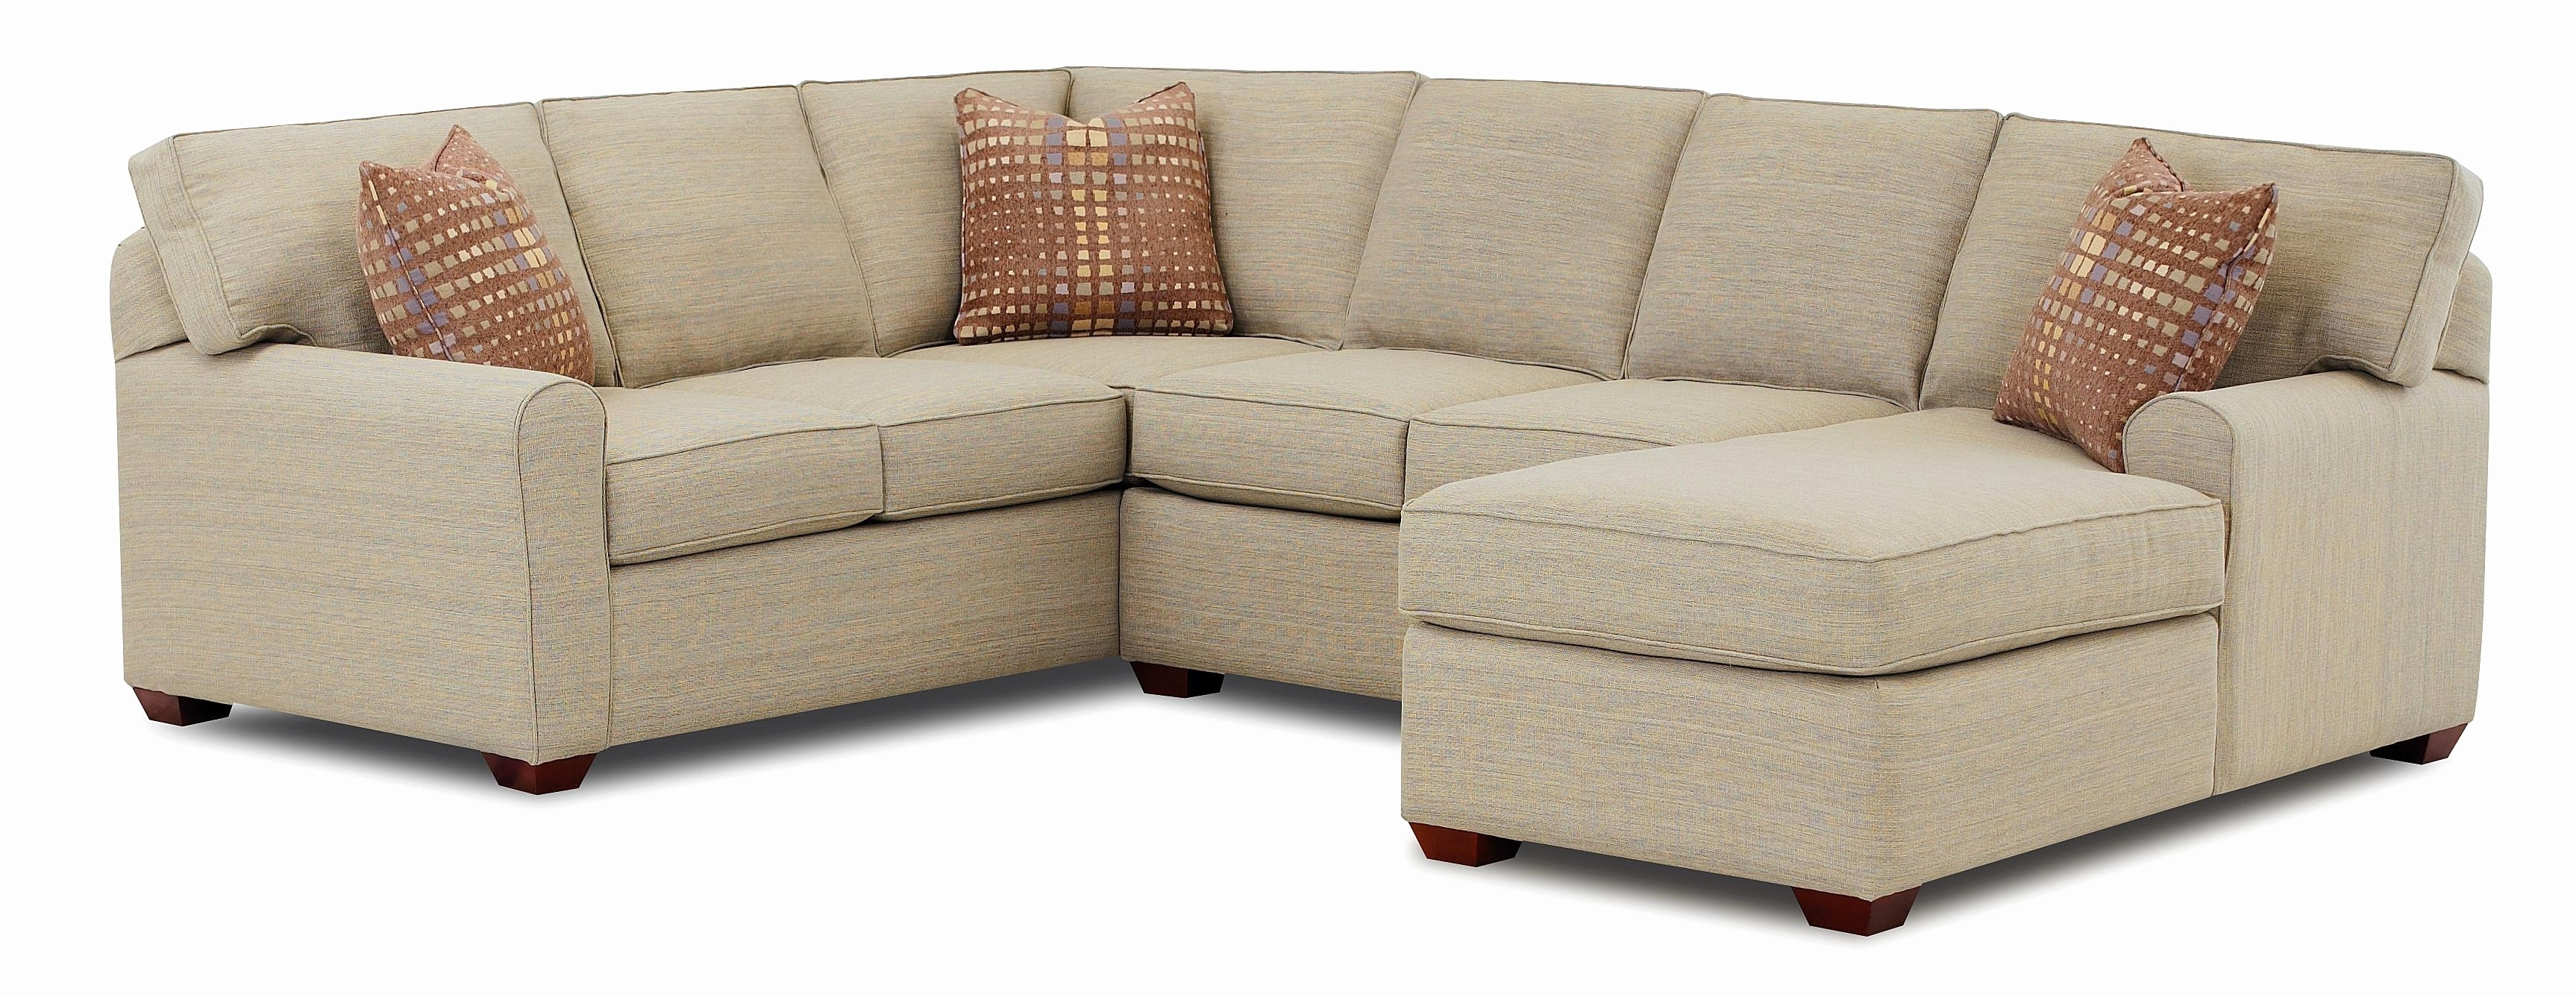 Chaise Sofa Sectionals With Regard To Most Popular Lovely Chaise Sectional Sofa Beautiful – Sofa Furnitures (View 2 of 15)